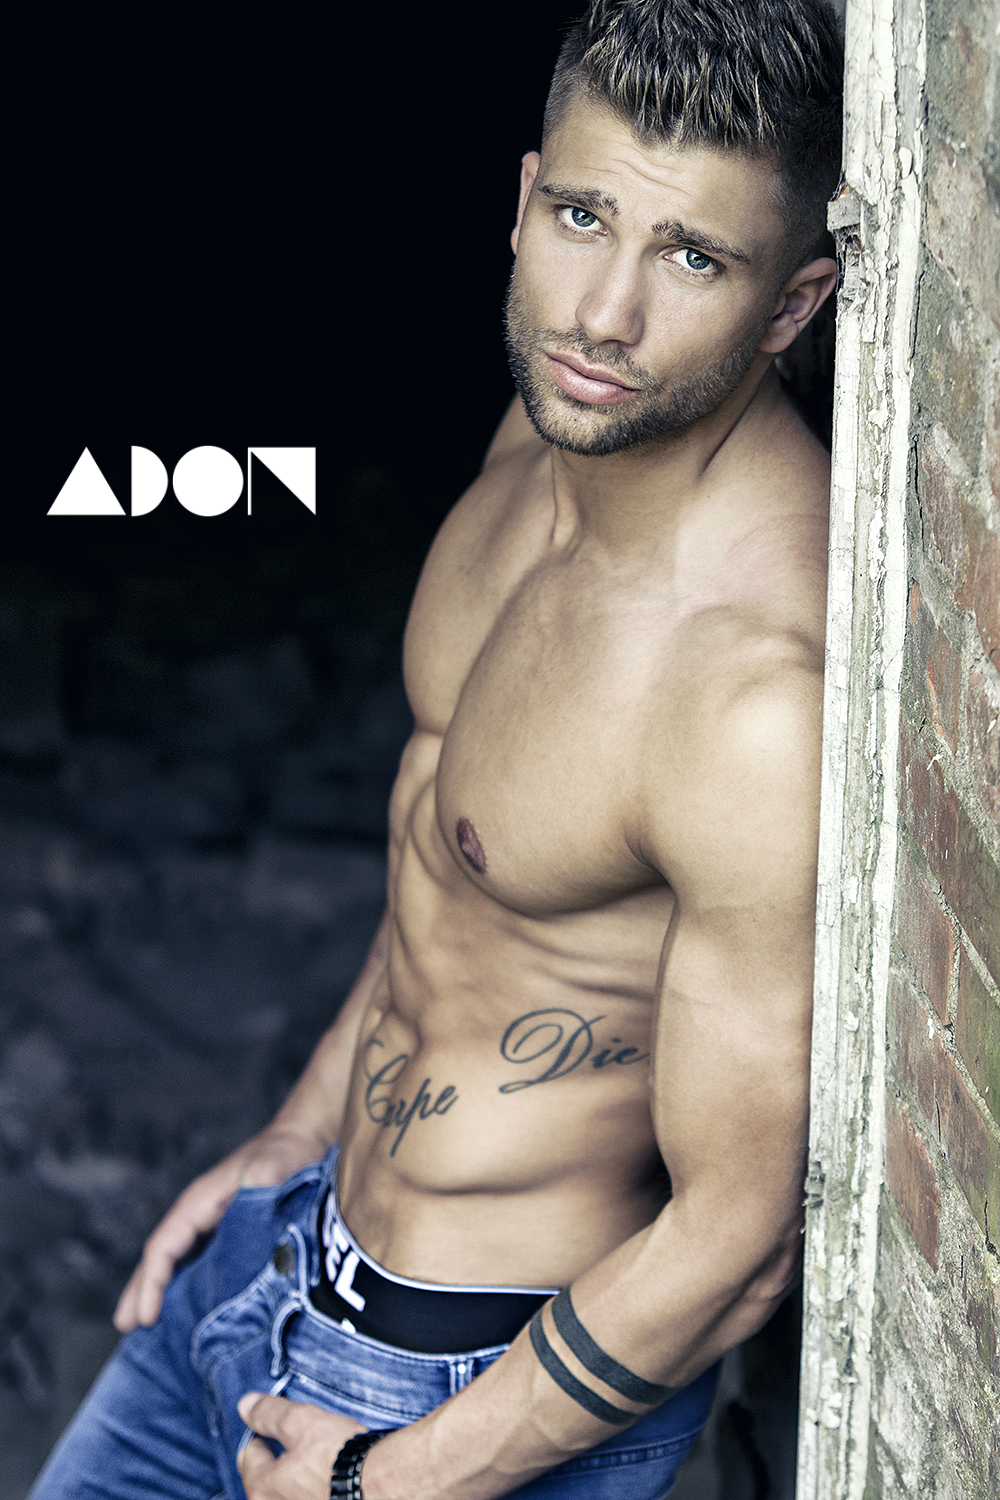 Adon Exclusive: Model Tobias Worth By Michael Laurien